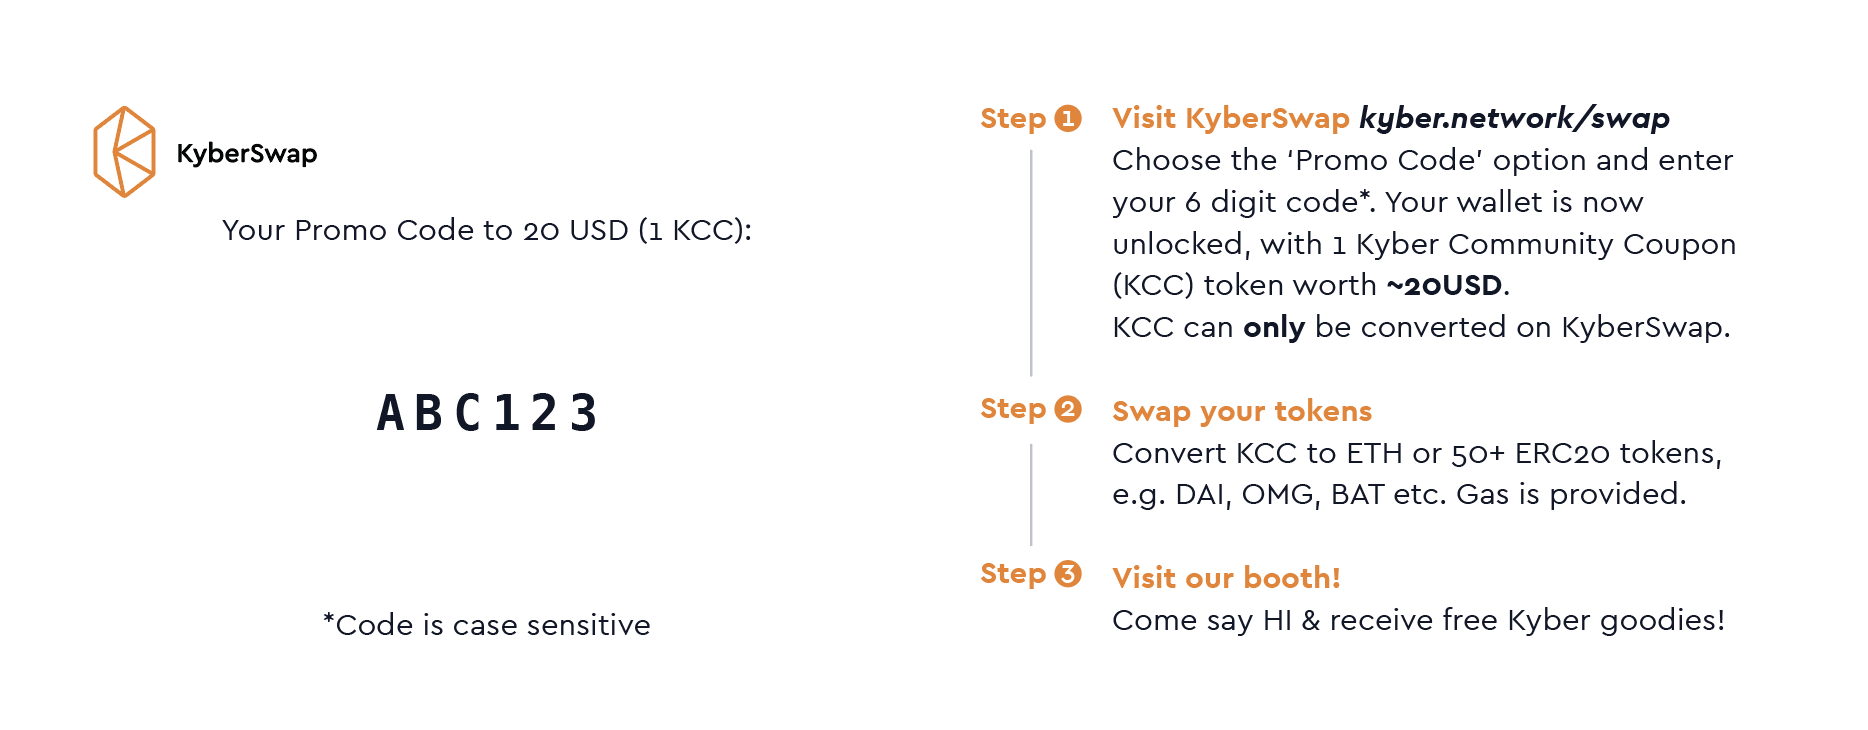 KCC has been changed to PT (Promo Token) - Kyber Network